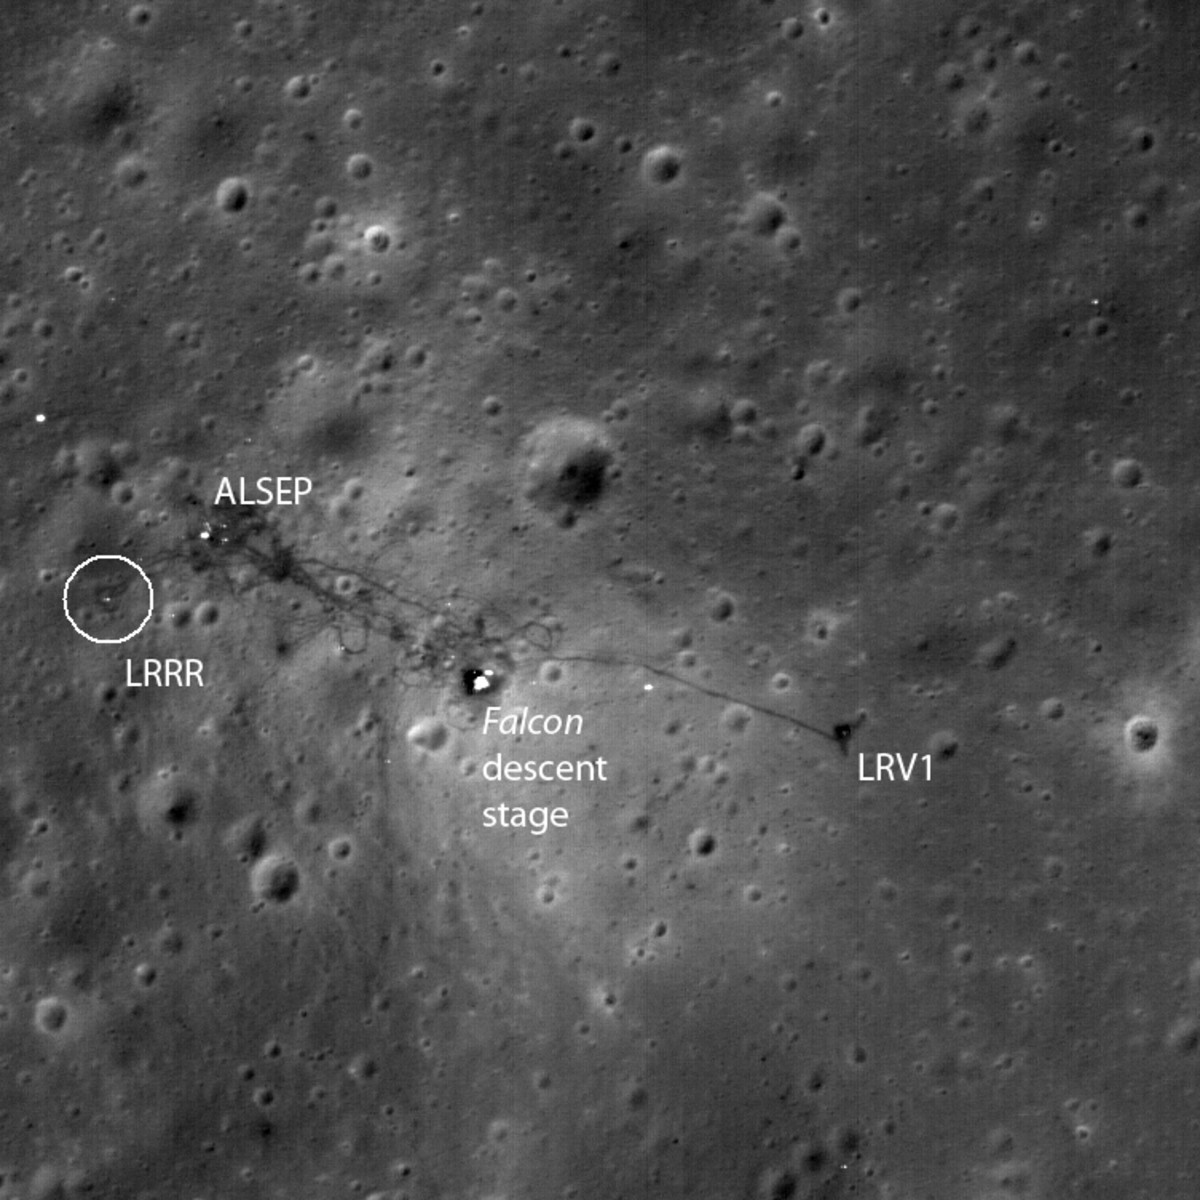 April 2010. Another pass reveals the Lunar Descent Module (i.e. the legs and base), LRV (moon buggy) and LRRR, the Laser Ranging RetroReflector that I explained above.